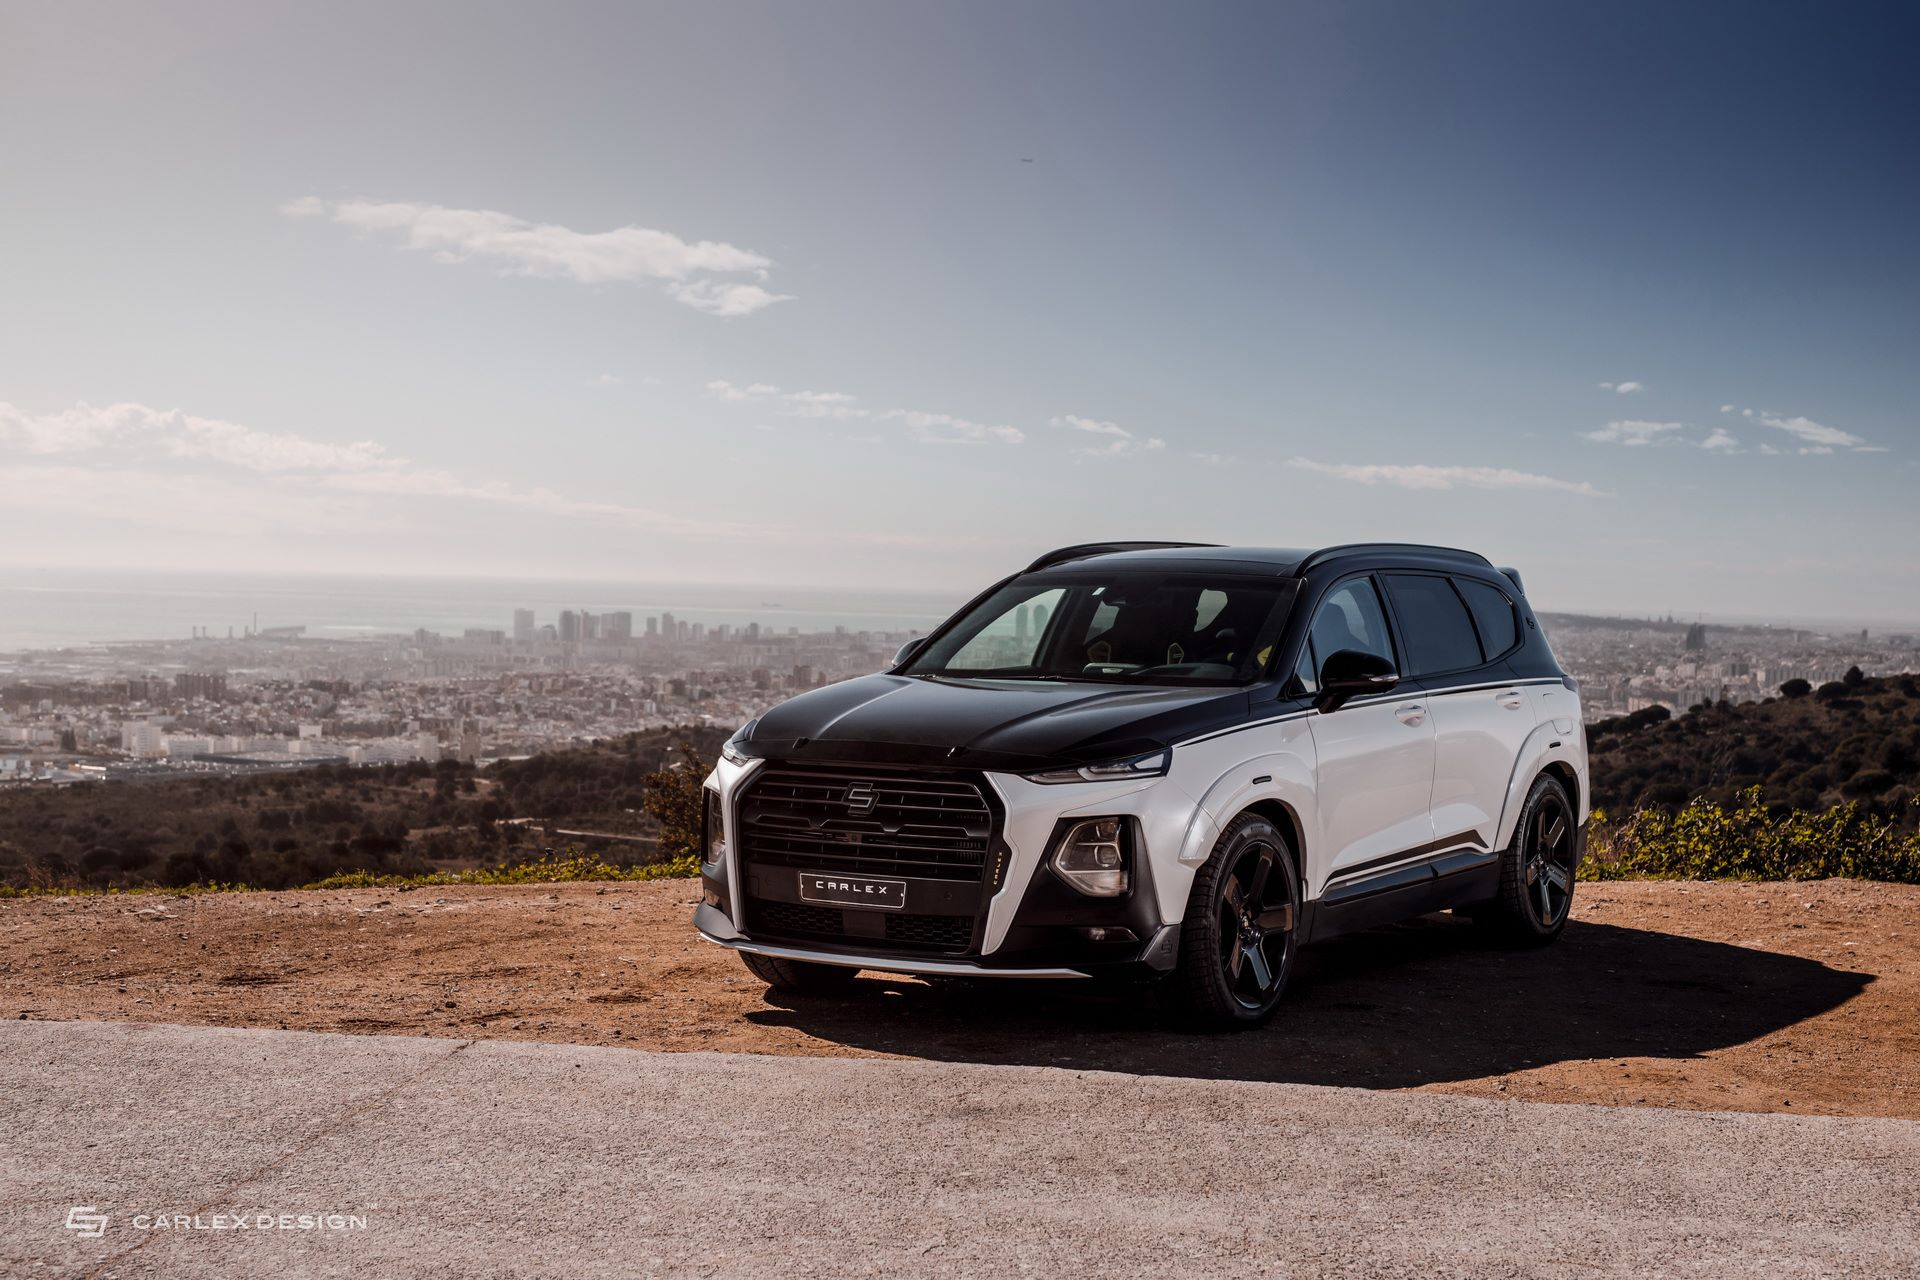 Hyundai-Santa-Fe-Urban-Edition-by-Carlex-Design-24